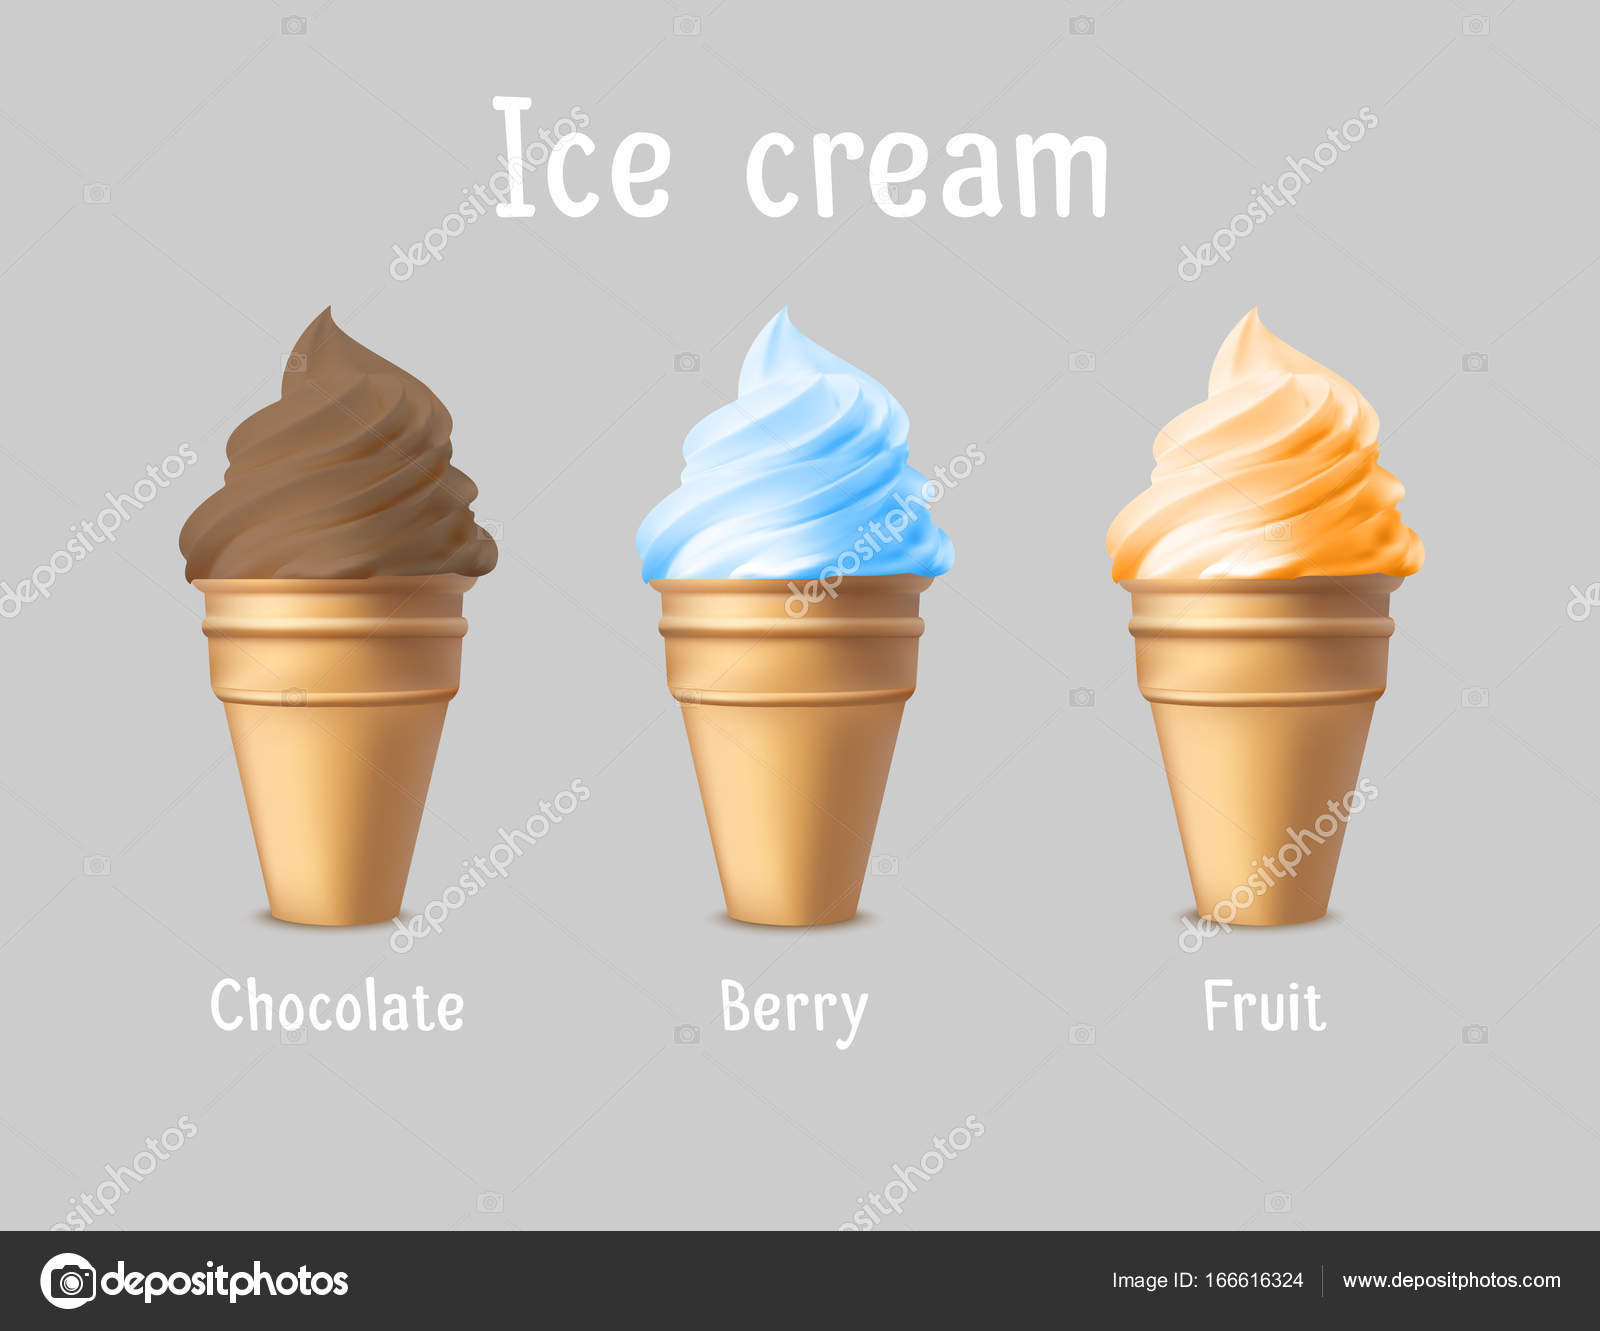 Ice cream products